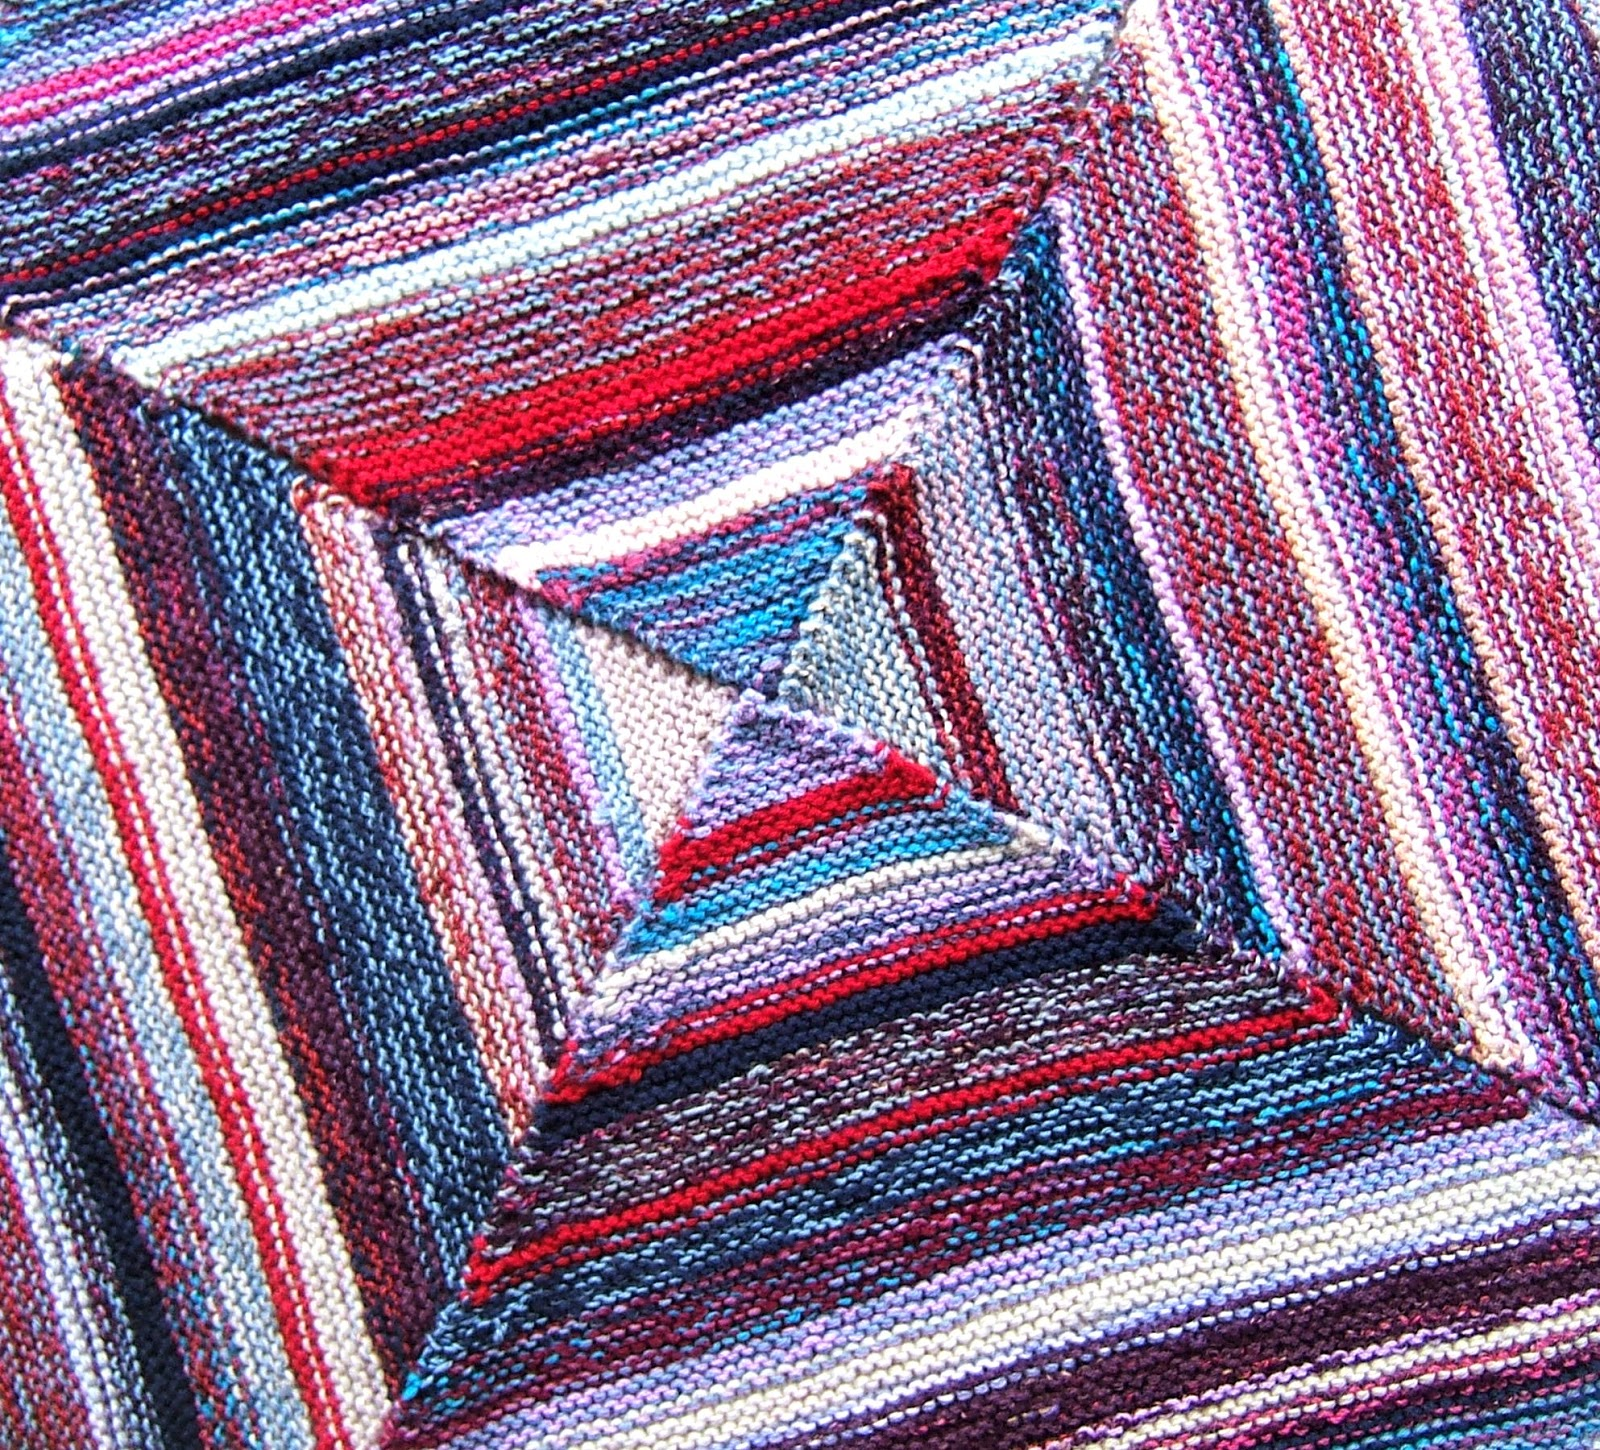 aussie knitting threads: Squares within squares